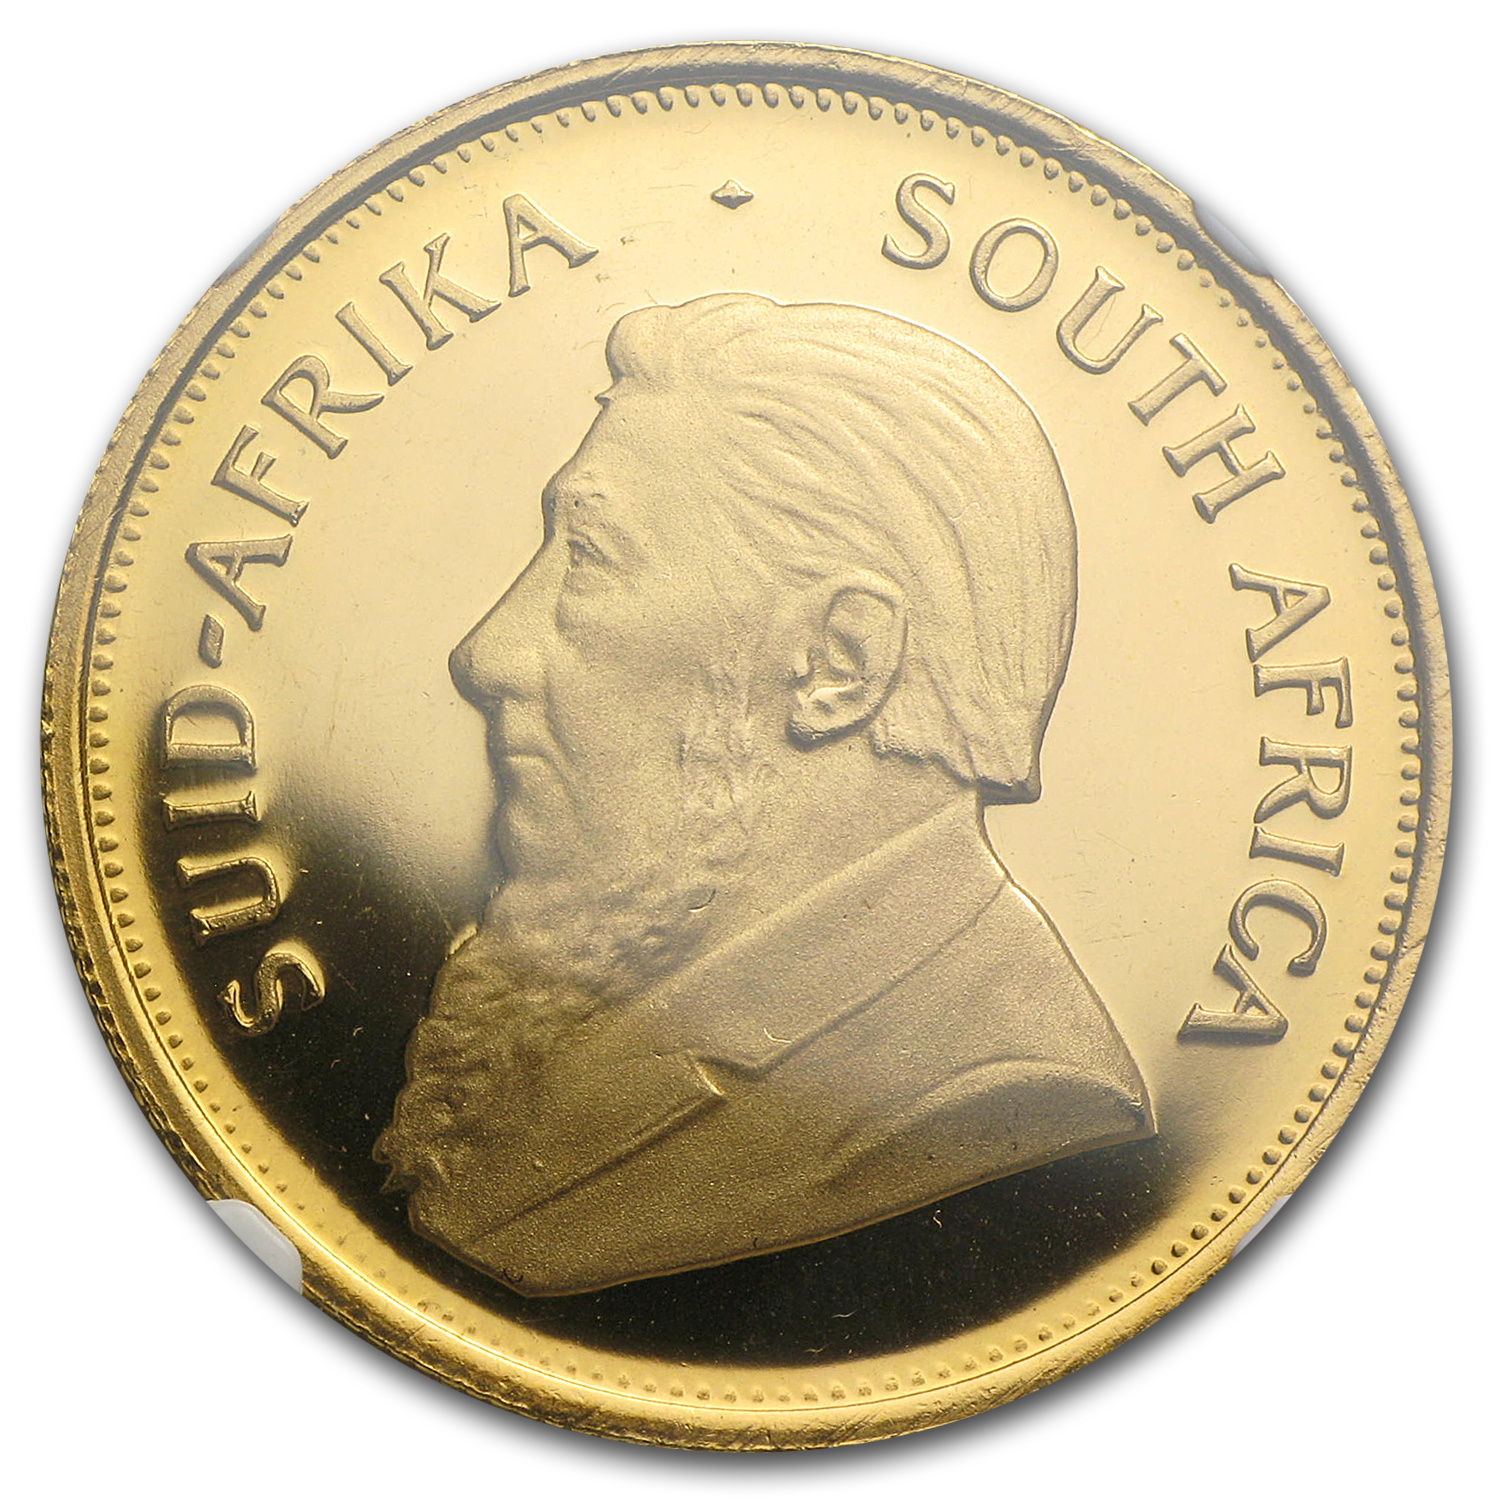 1970 1 oz Gold South African Krugerrand PF-67 UCAM NGC